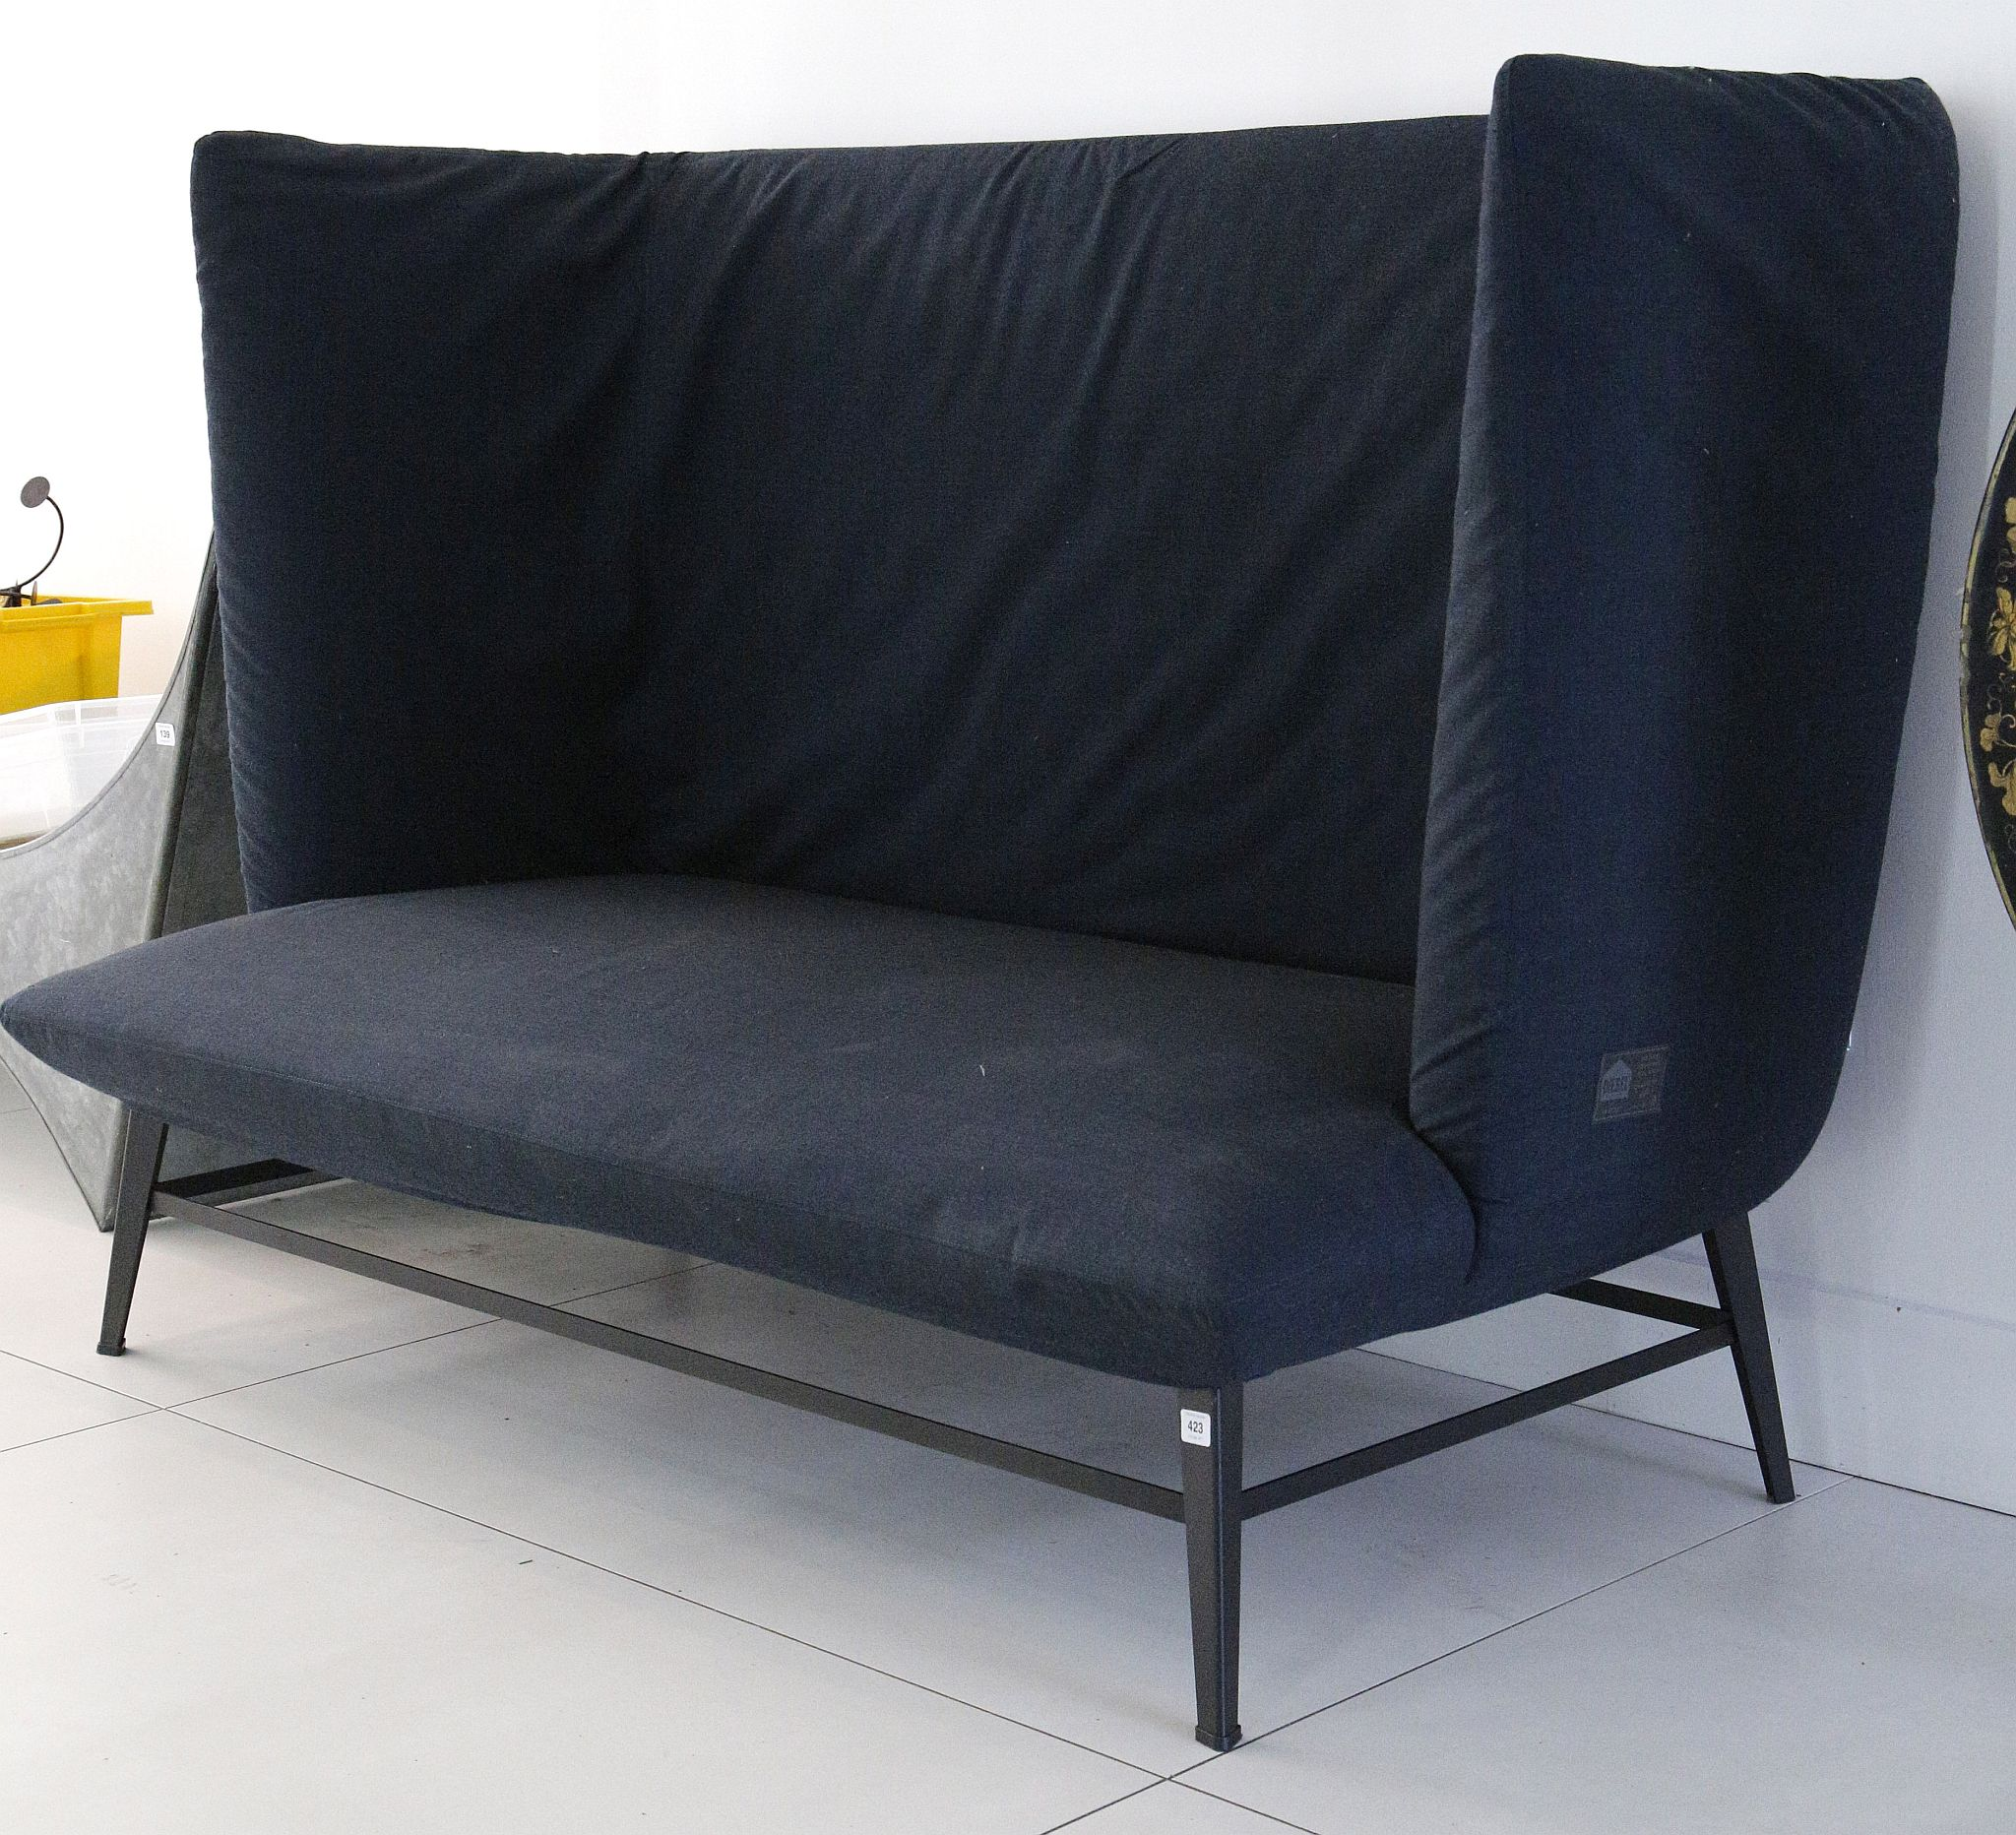 A MODERN DIESEL SOFA with Gimme shelter design produced in